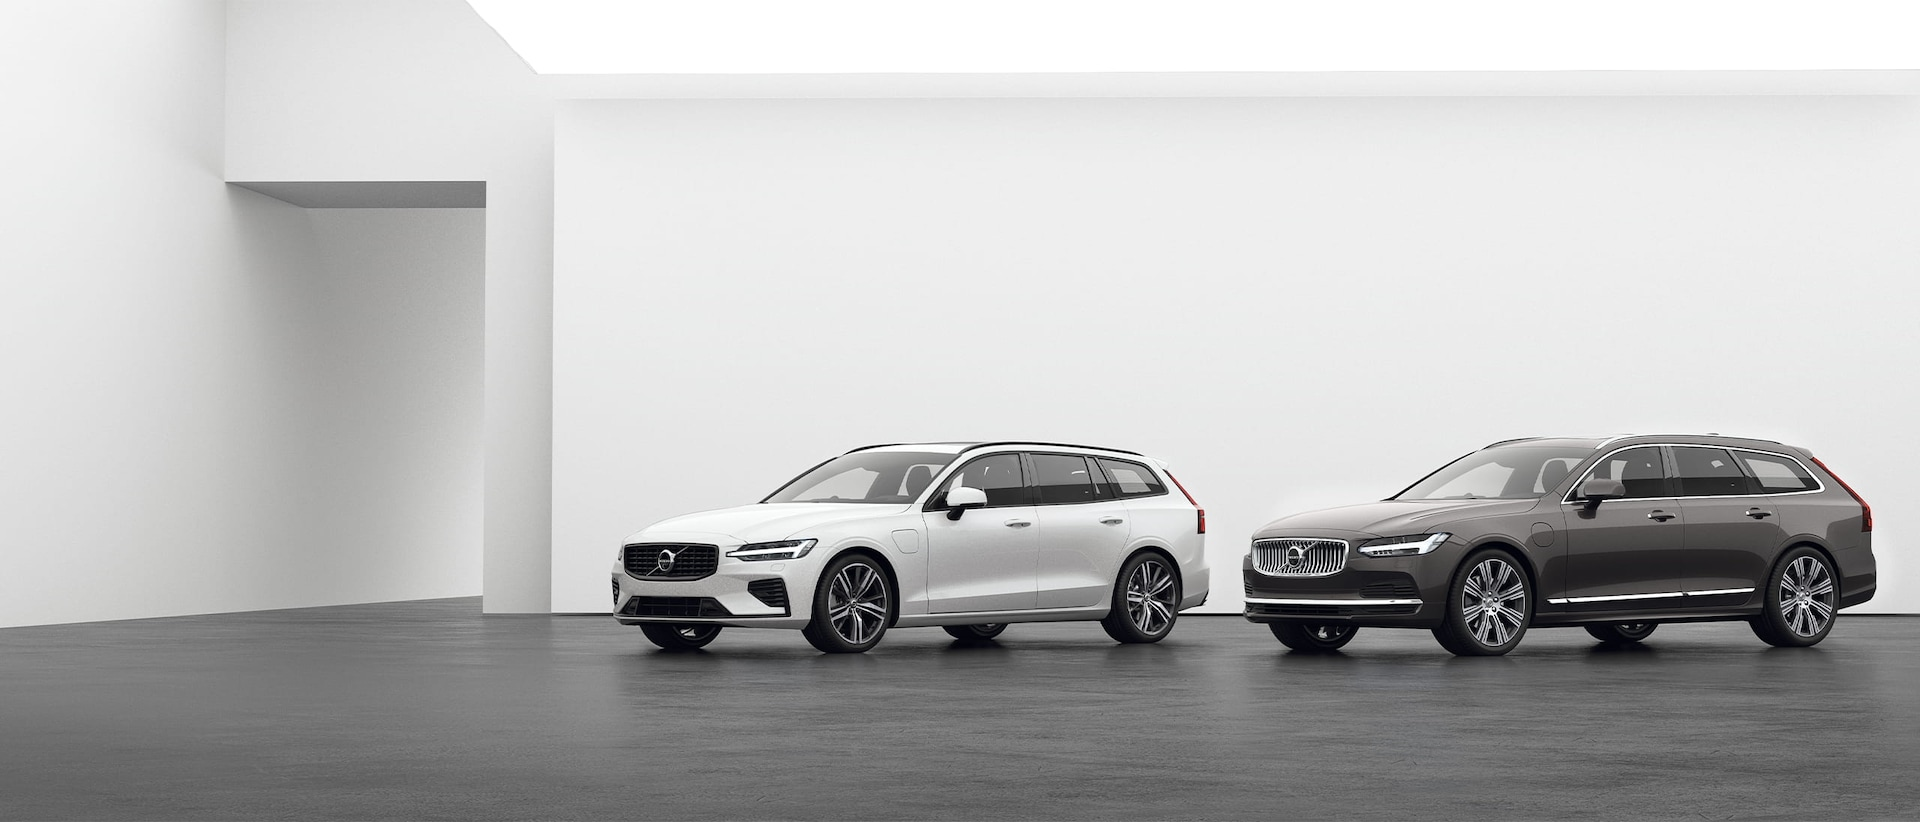 A Volvo Estate V90 and a Volvo Estate V60 Recharge standing on a grey floor